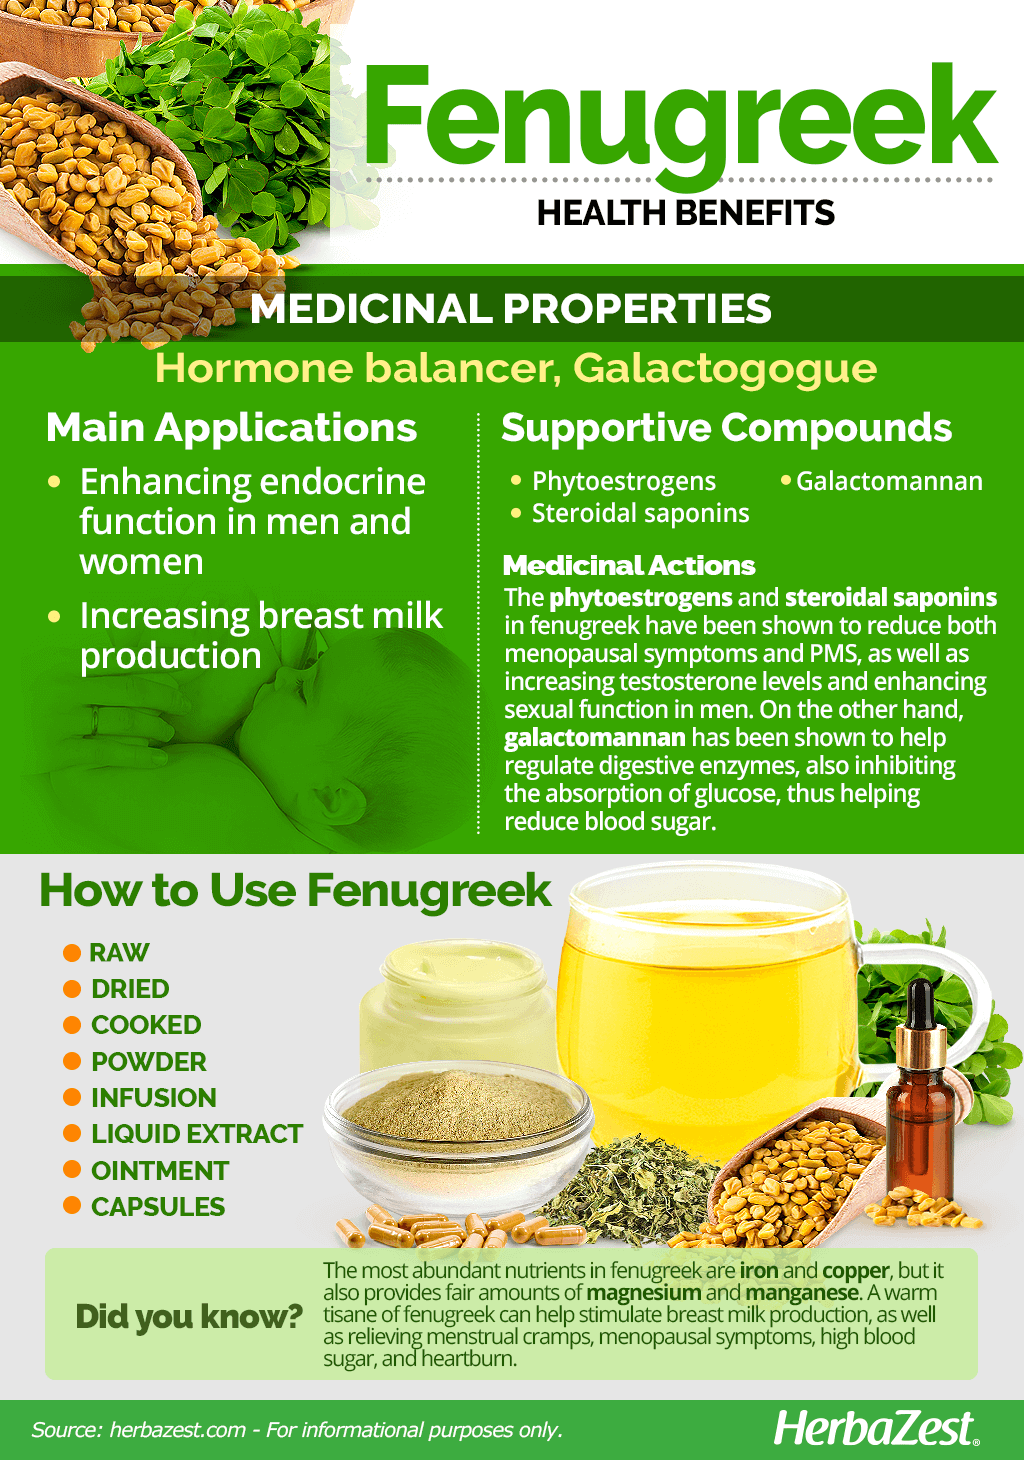 All About Fenugreek